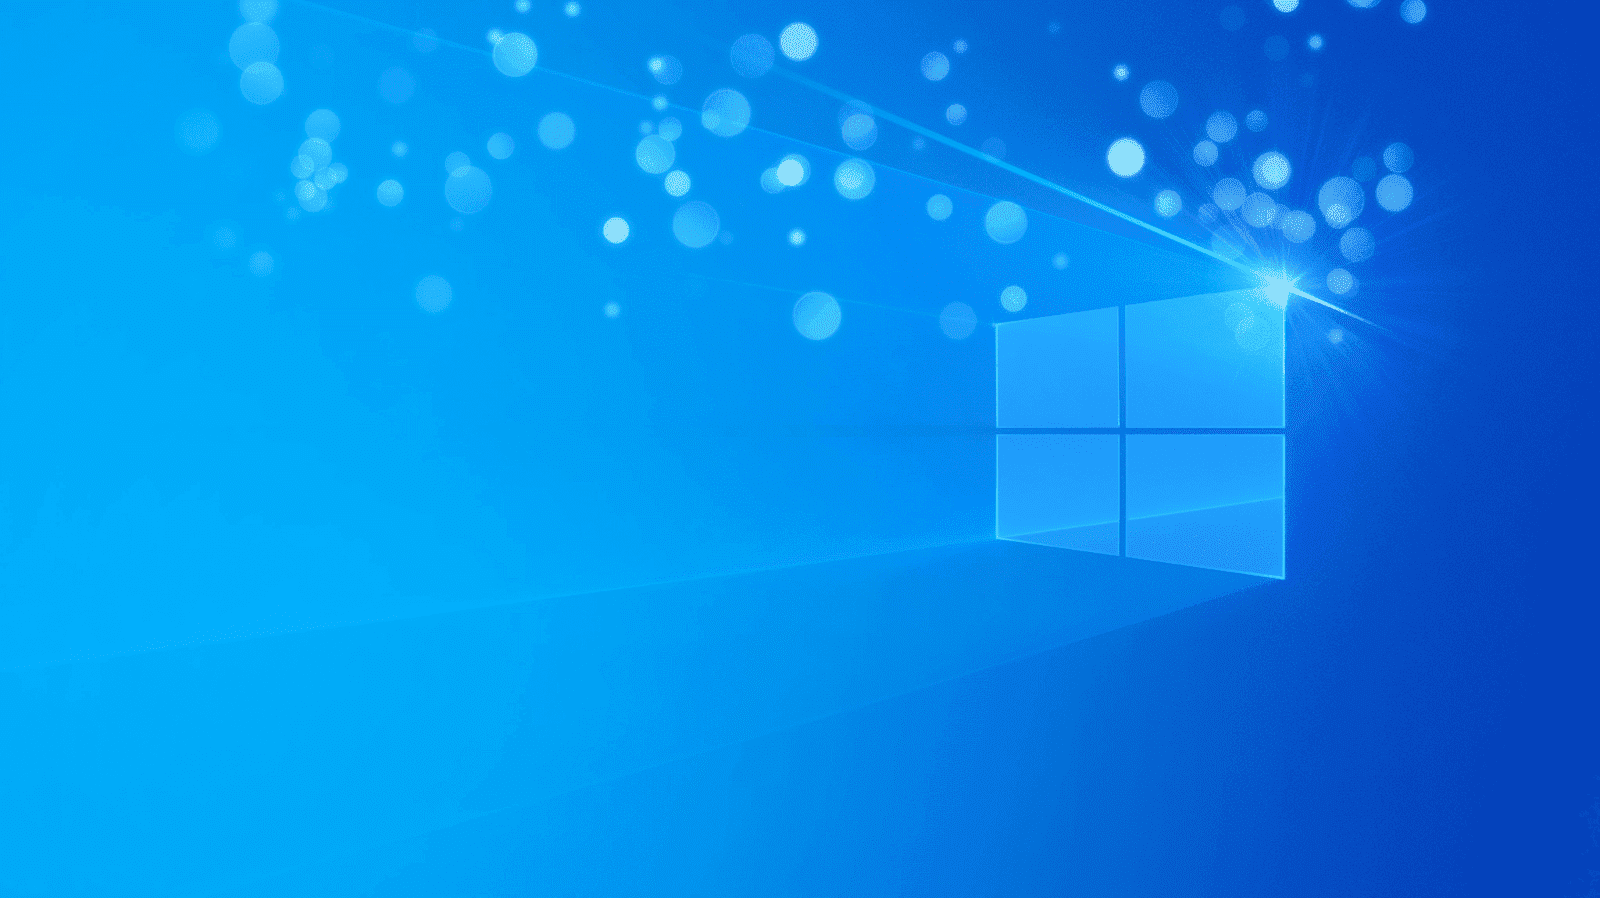 Windows-10-2009